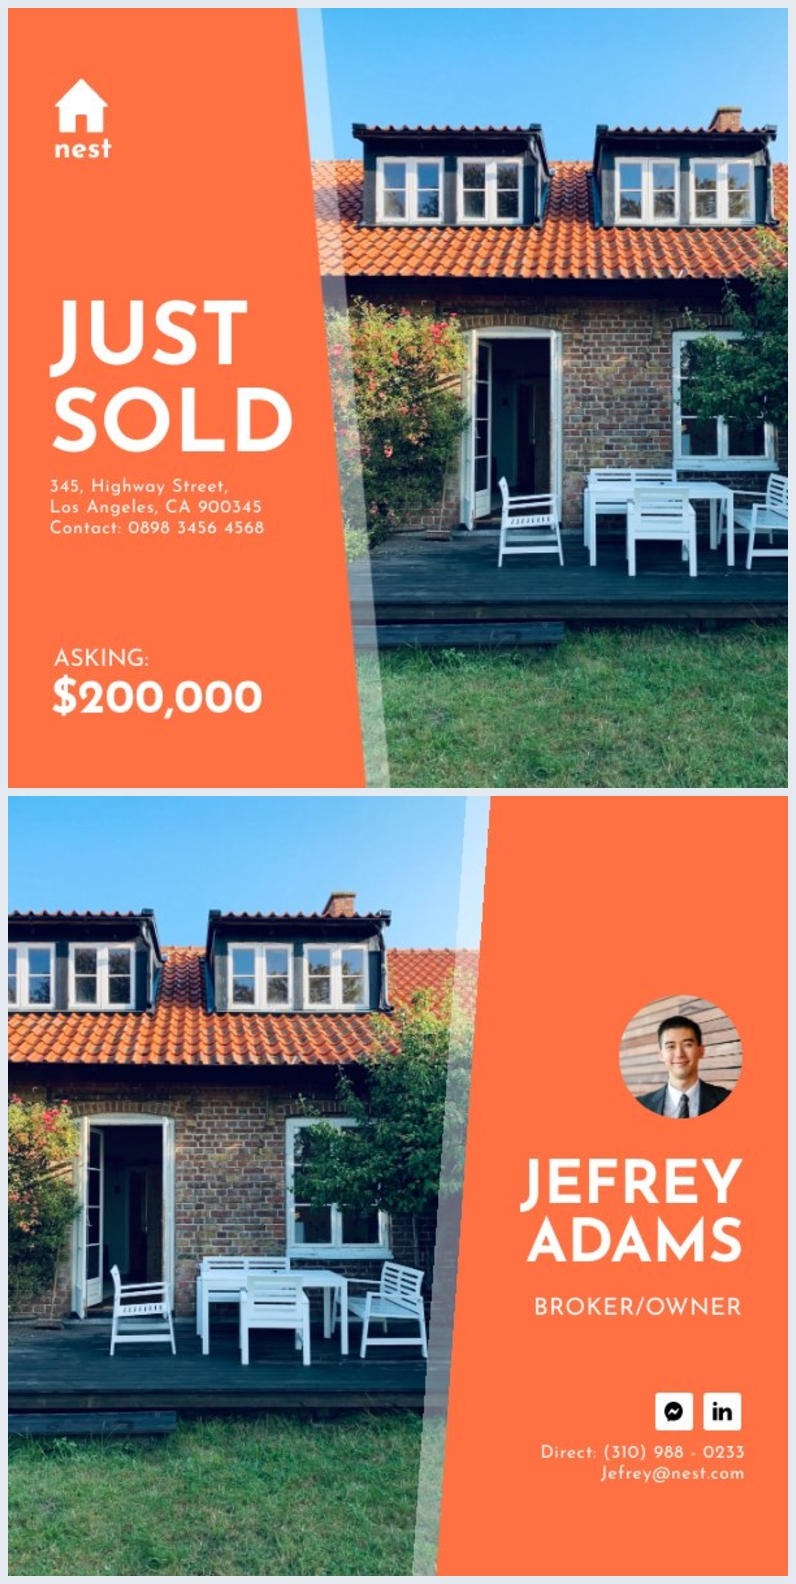 Real Estate Just Sold Postcard Design